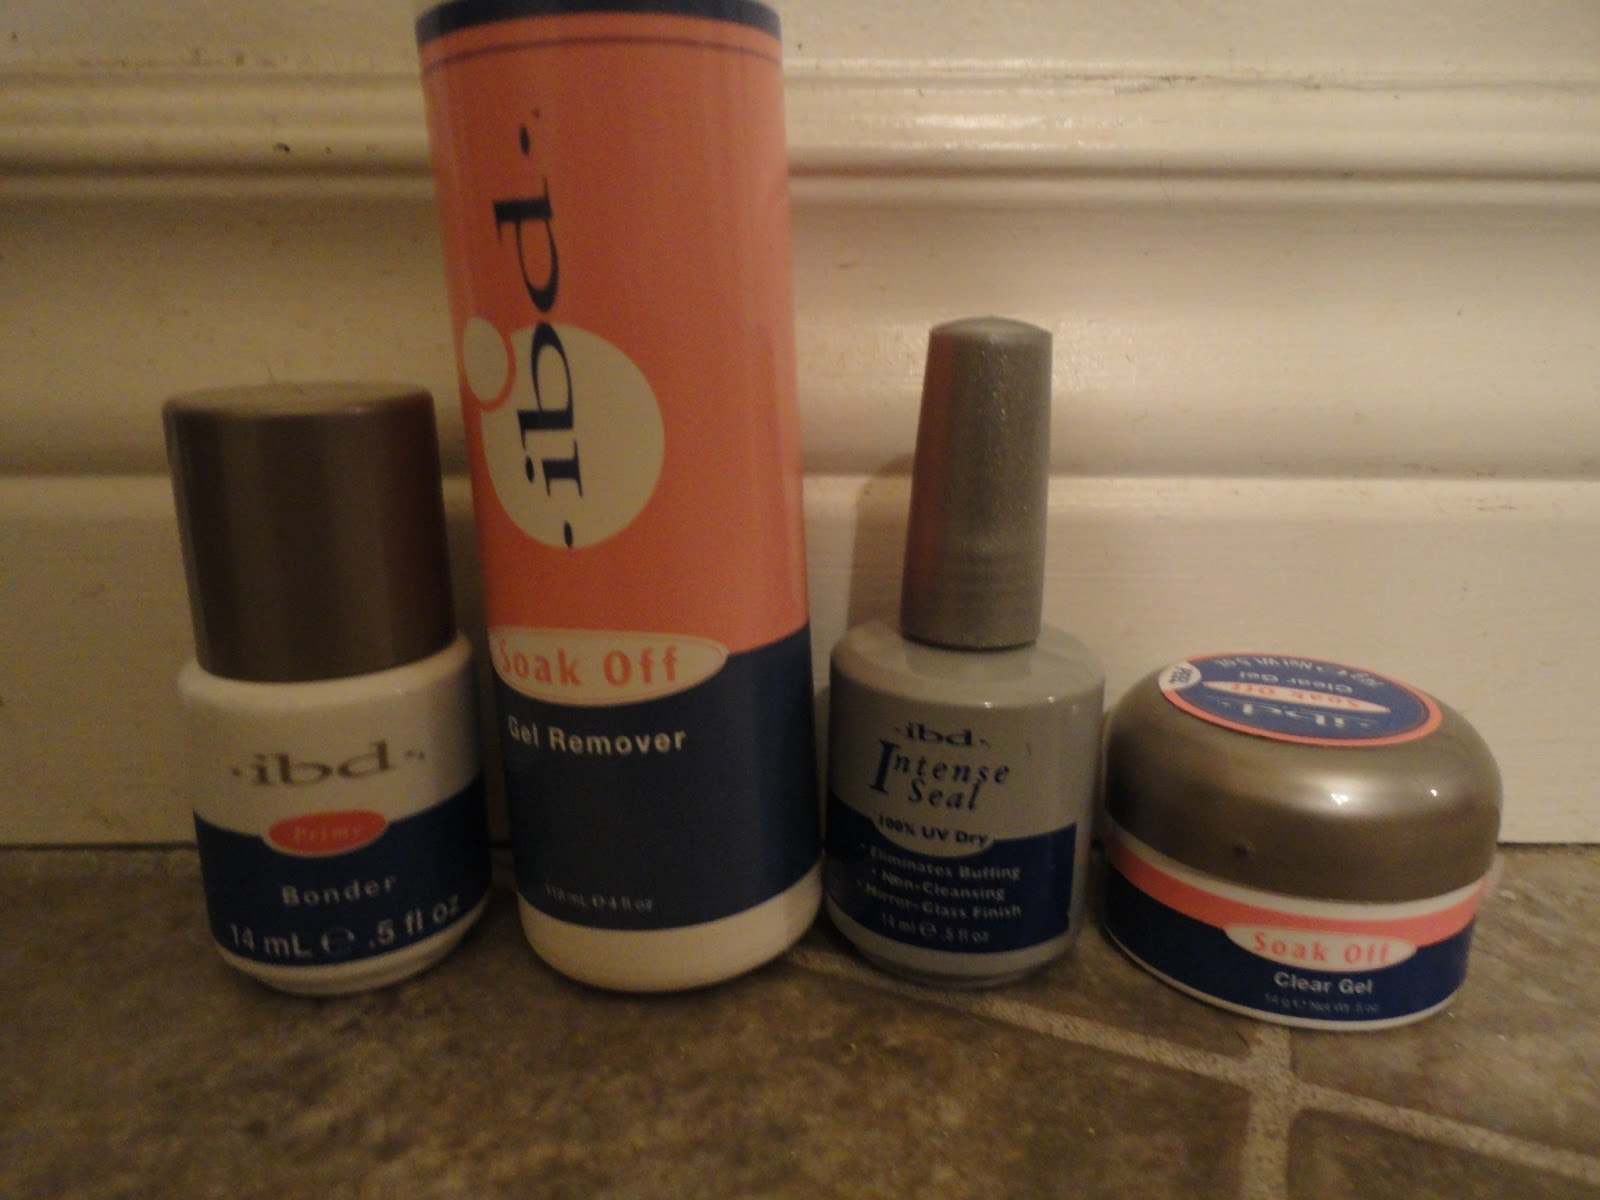 Here Are The Ibd Nail Products I Purchased Off Ebay Meant To Order Soak Clear Builder Gel But Shipper Sent Me